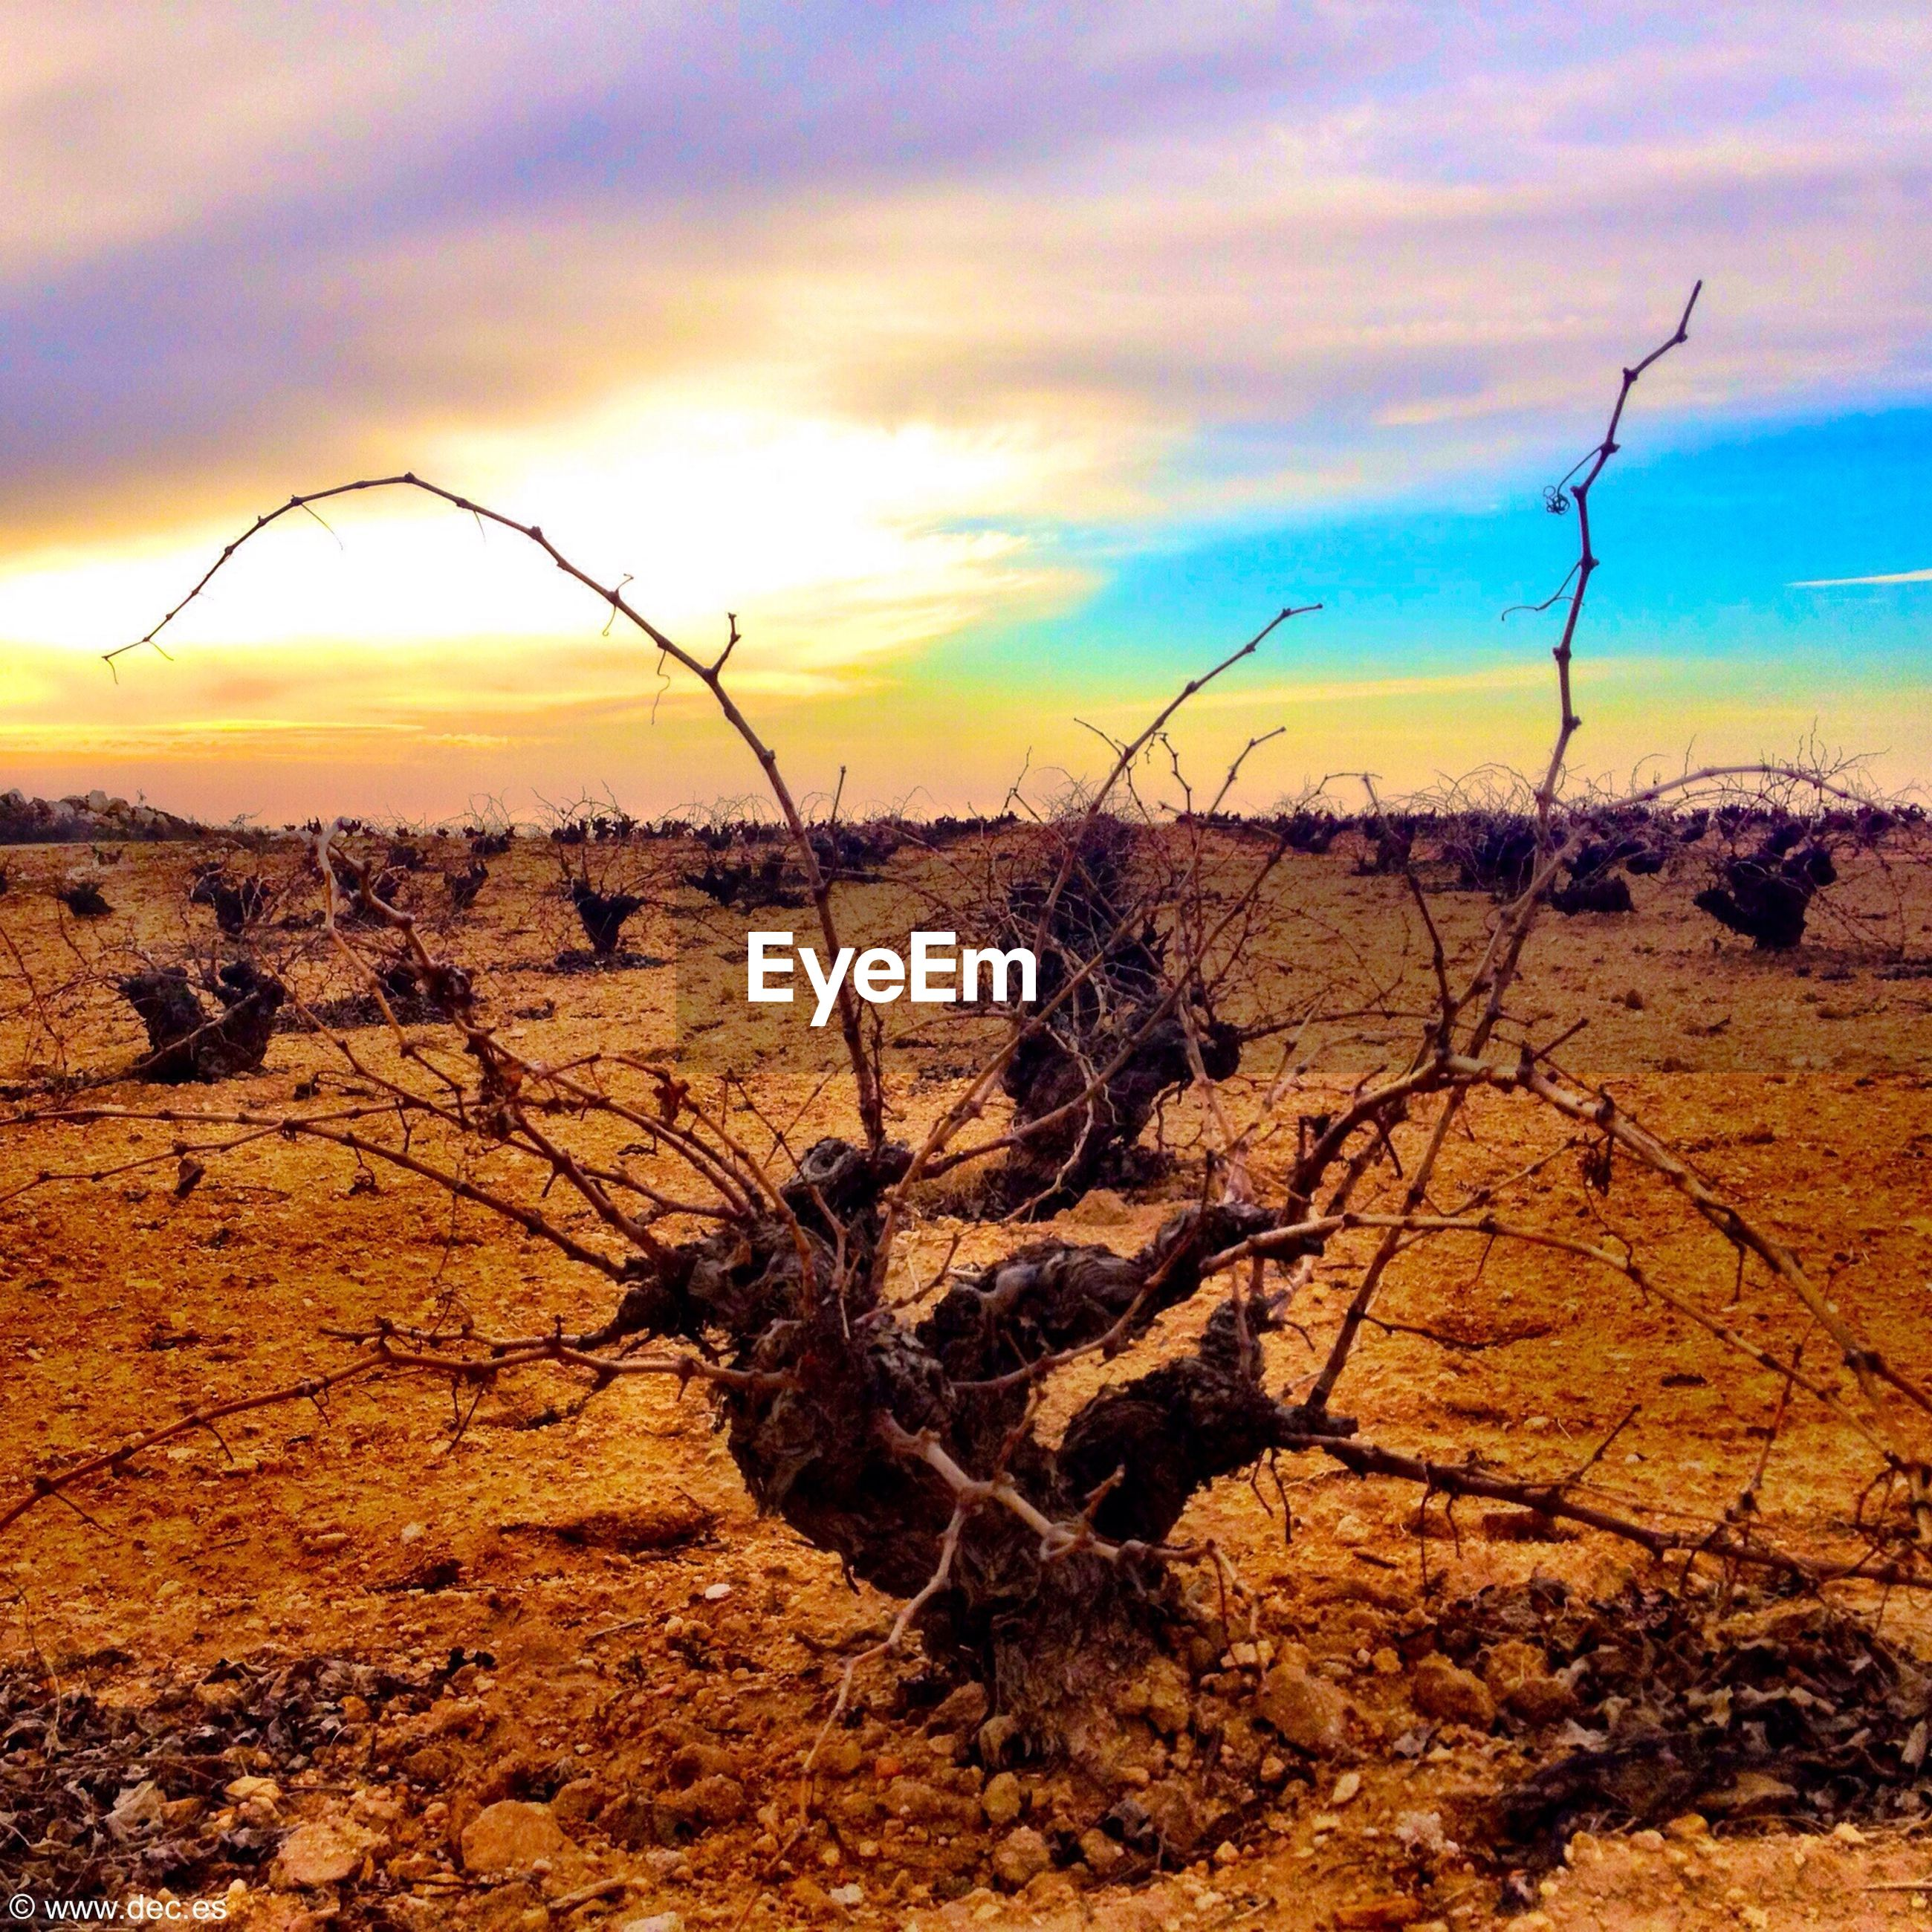 landscape, sky, sunset, tranquil scene, tranquility, field, scenics, nature, cloud - sky, dry, arid climate, beauty in nature, rural scene, dead plant, plant, desert, bare tree, agriculture, cloud, horizon over land